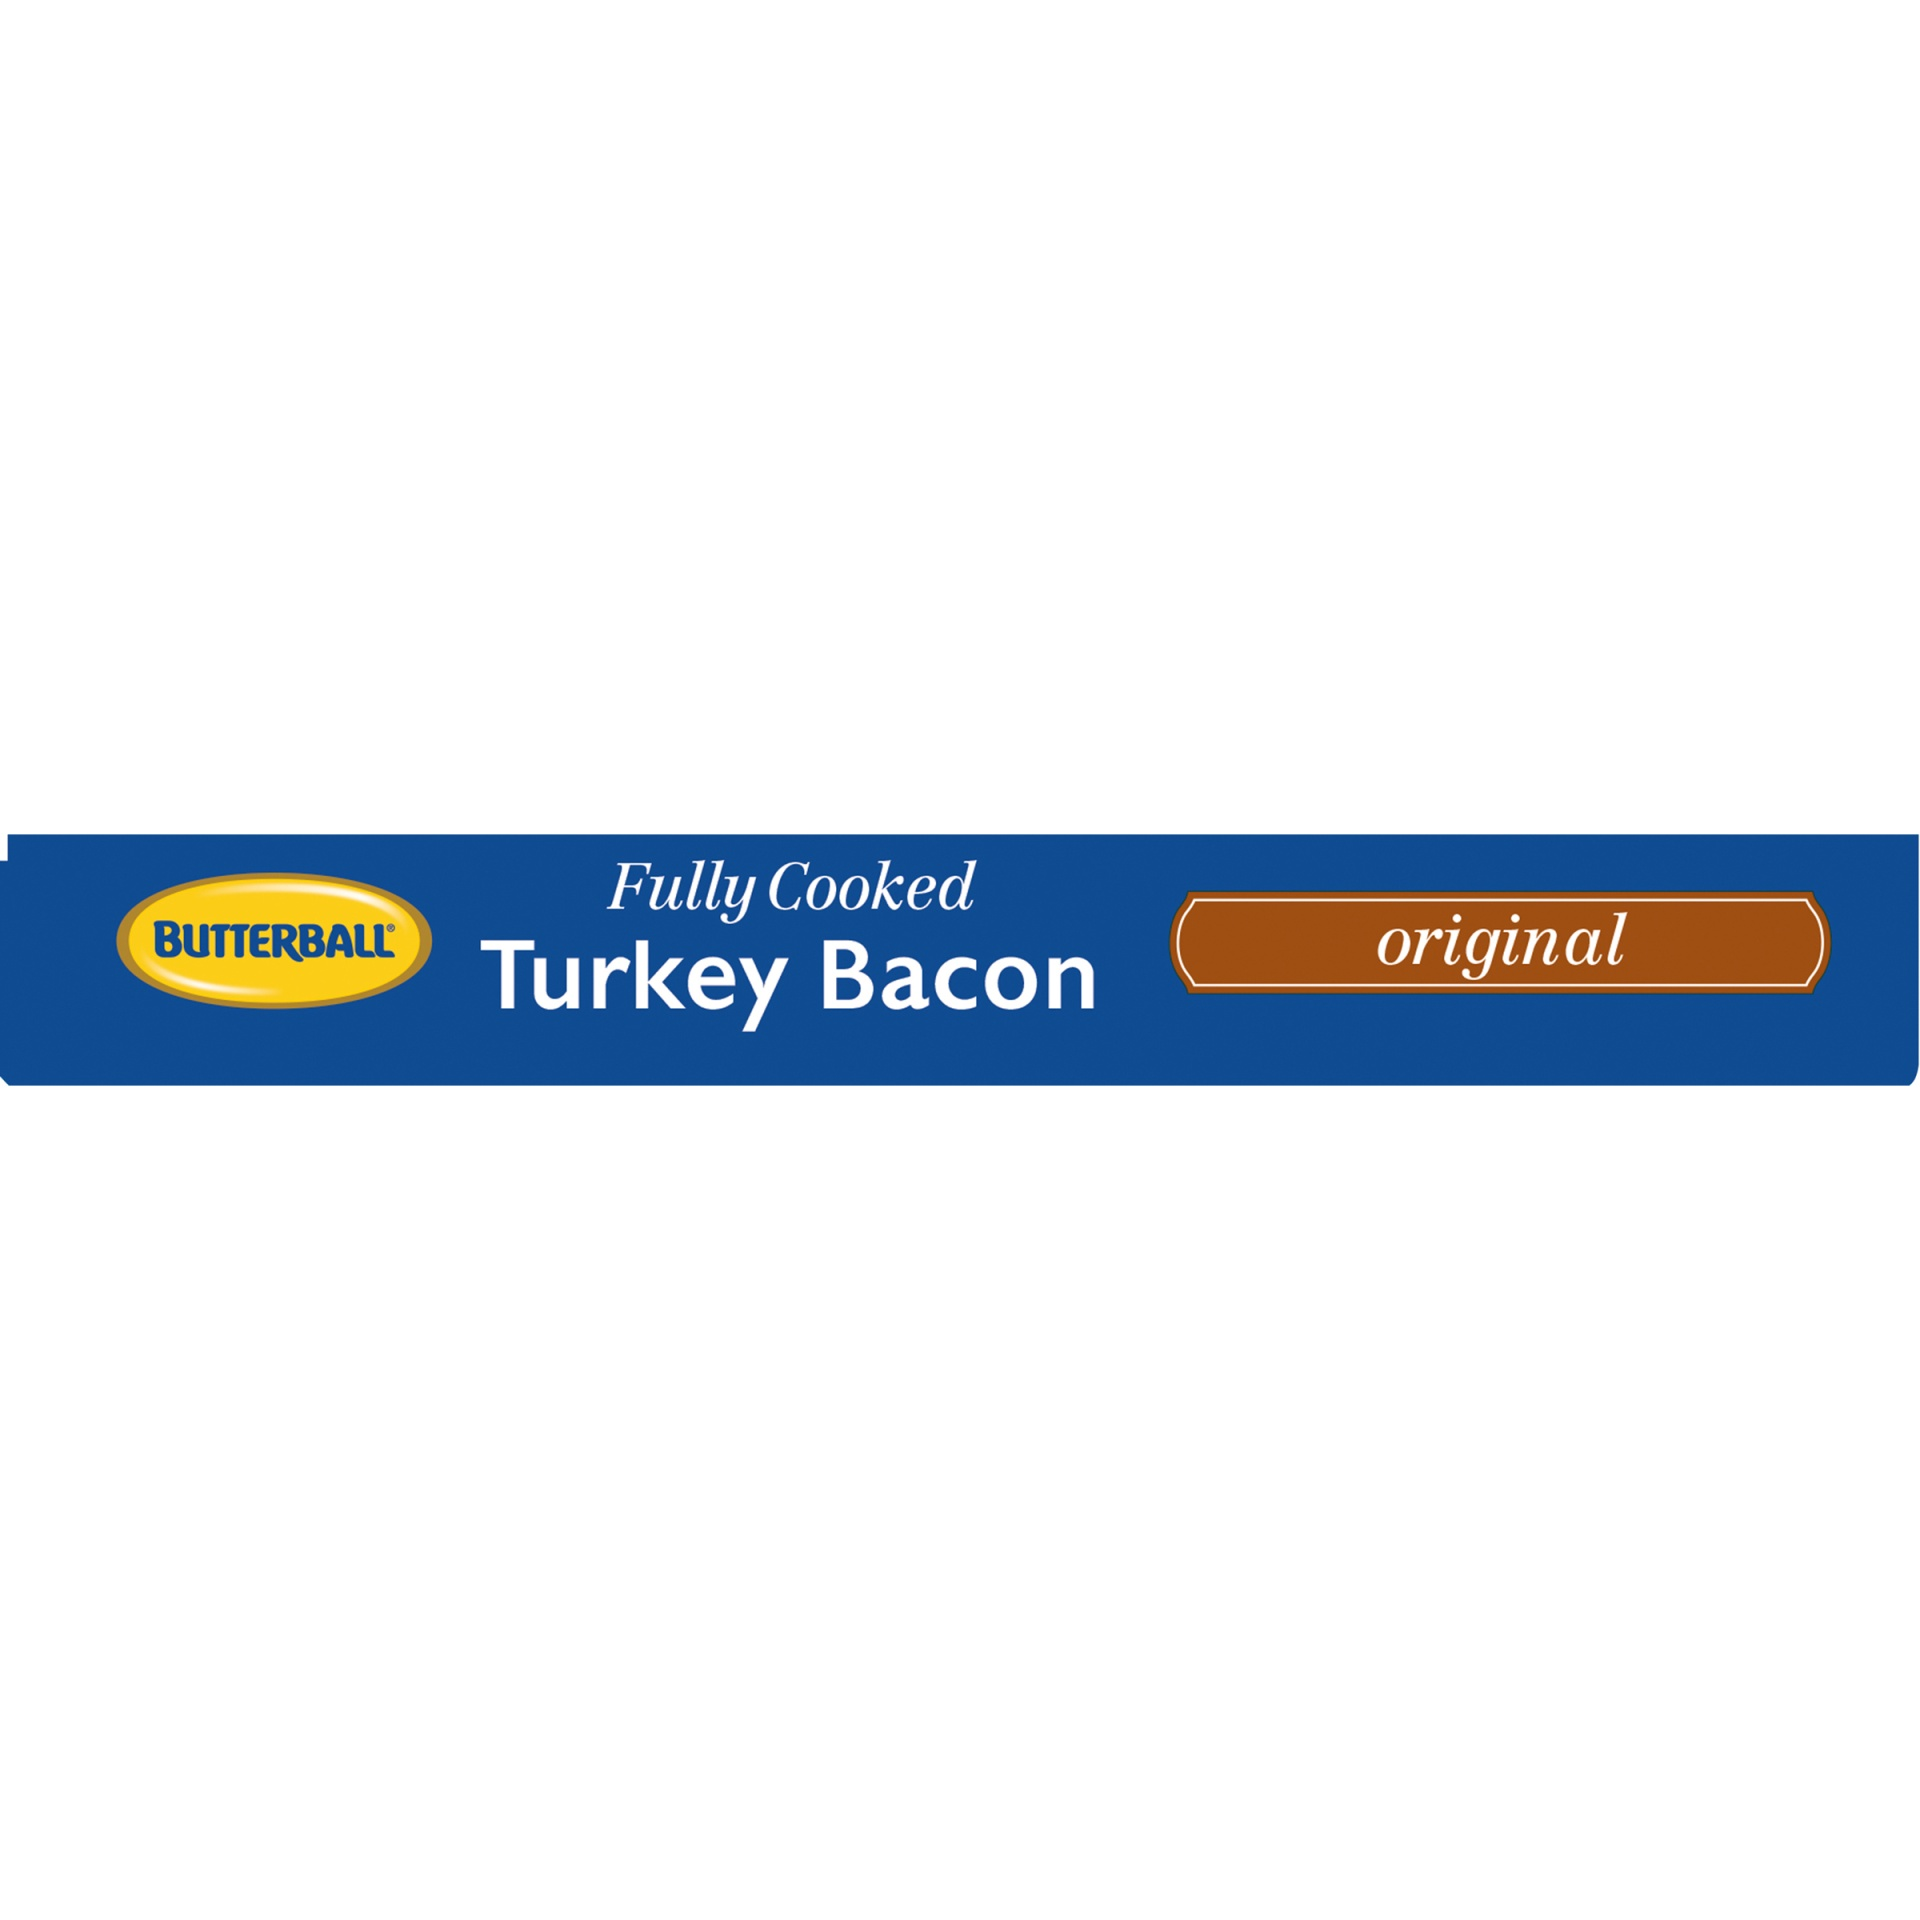 slide 5 of 8, Butterball Every Day Original Fully Cooked Turkey Bacon,